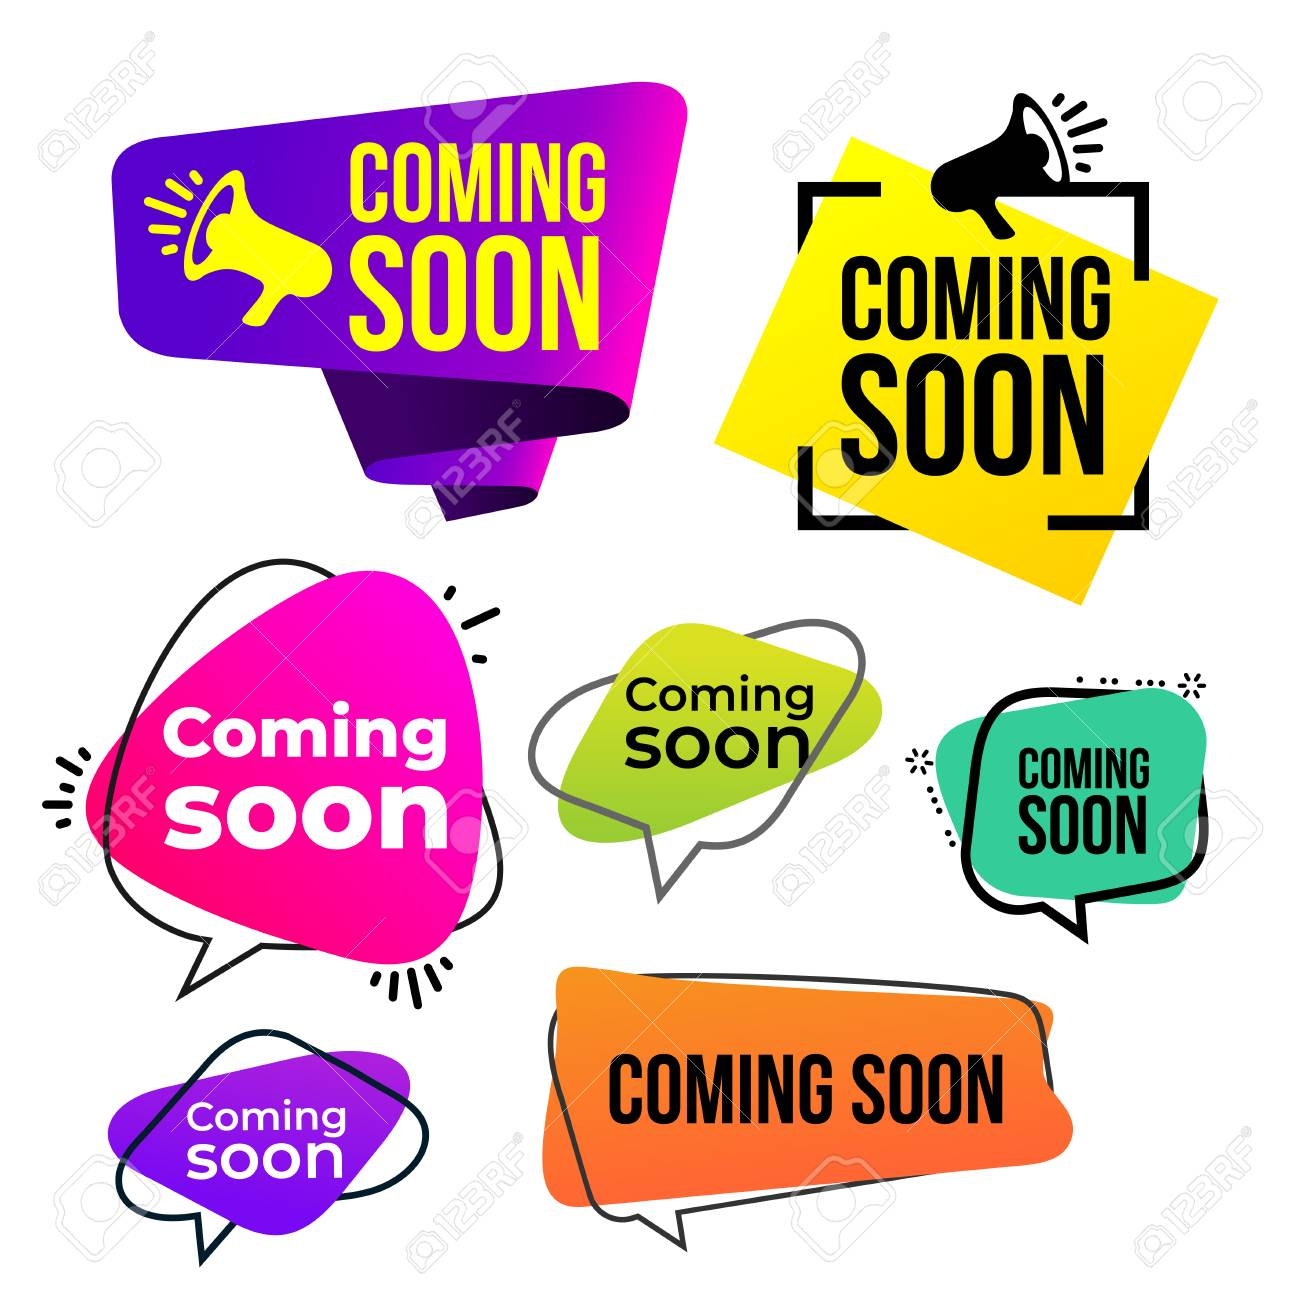 Set of coming soon icon. Vector illustration. Isolated on white background. - 108305349